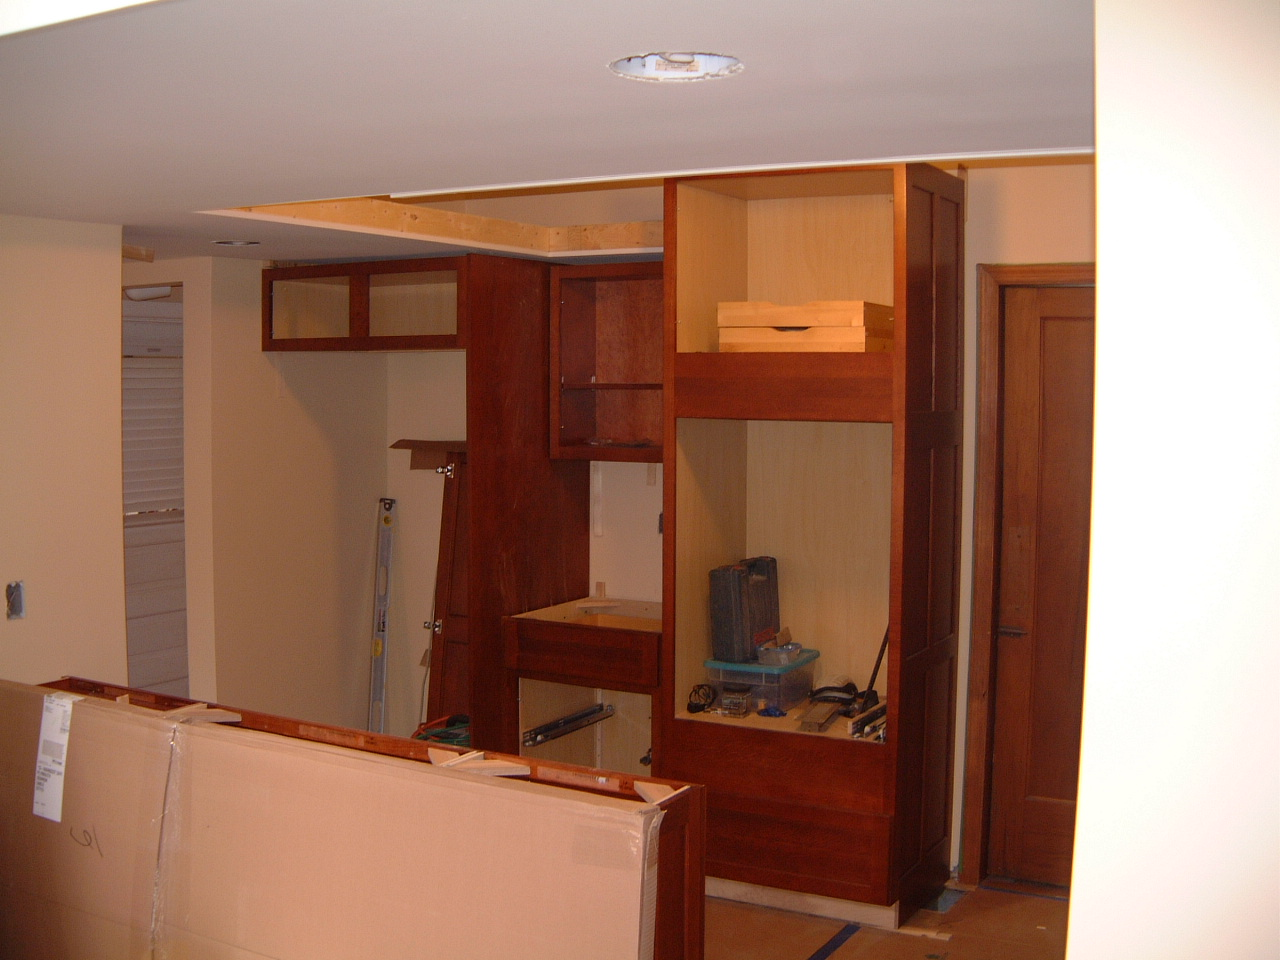 Springfield Kitchen - Cabinet Install - Remodeling Designs, Inc.